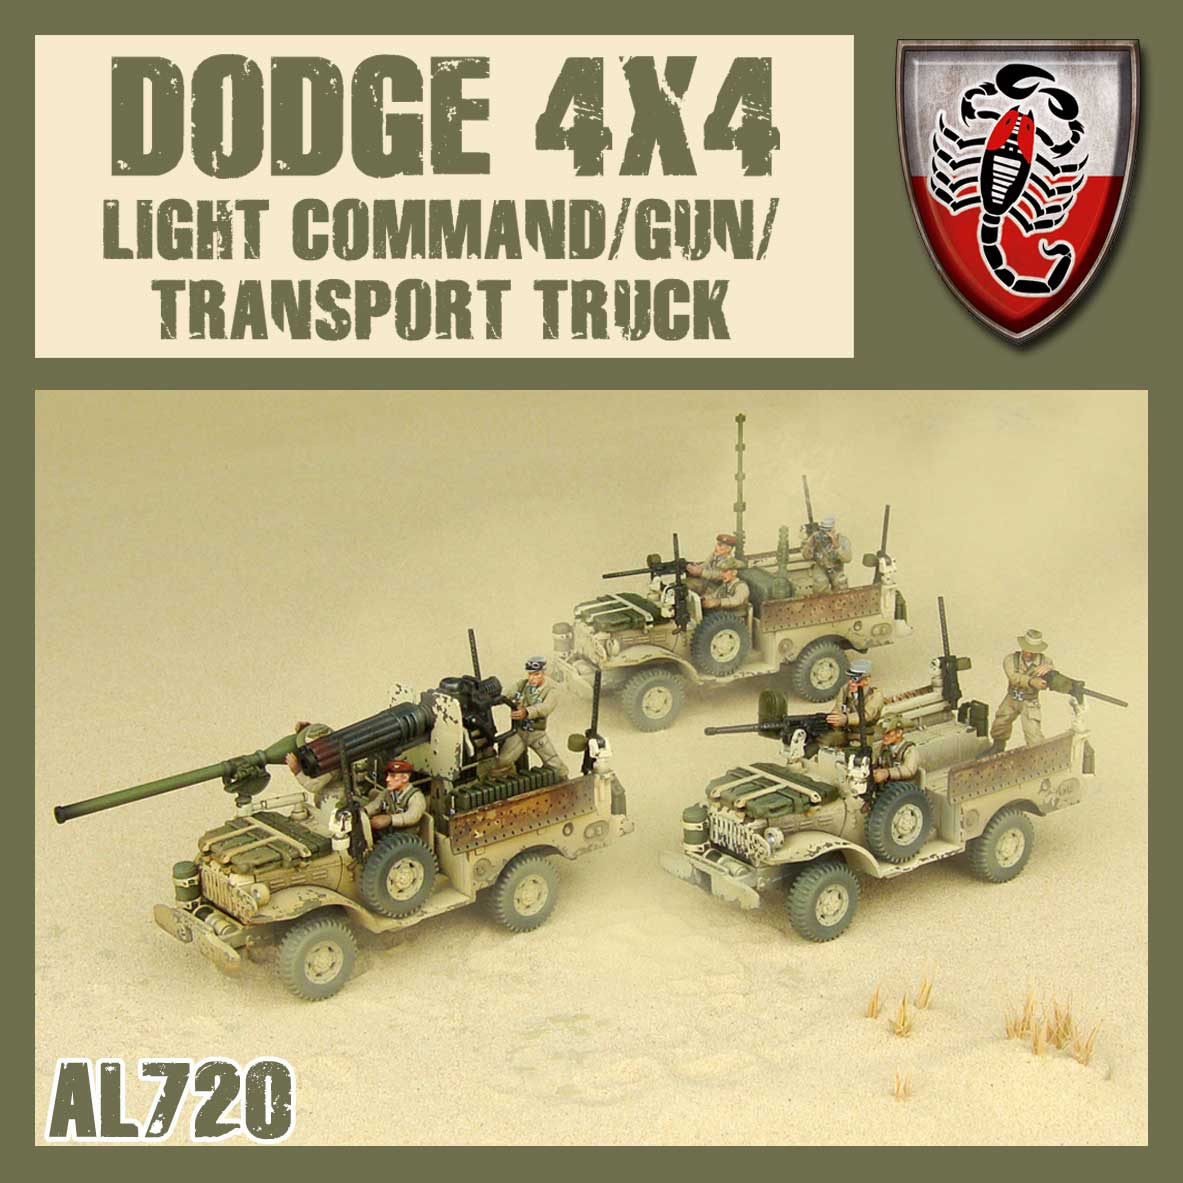 Command/Gun/Transport Truck